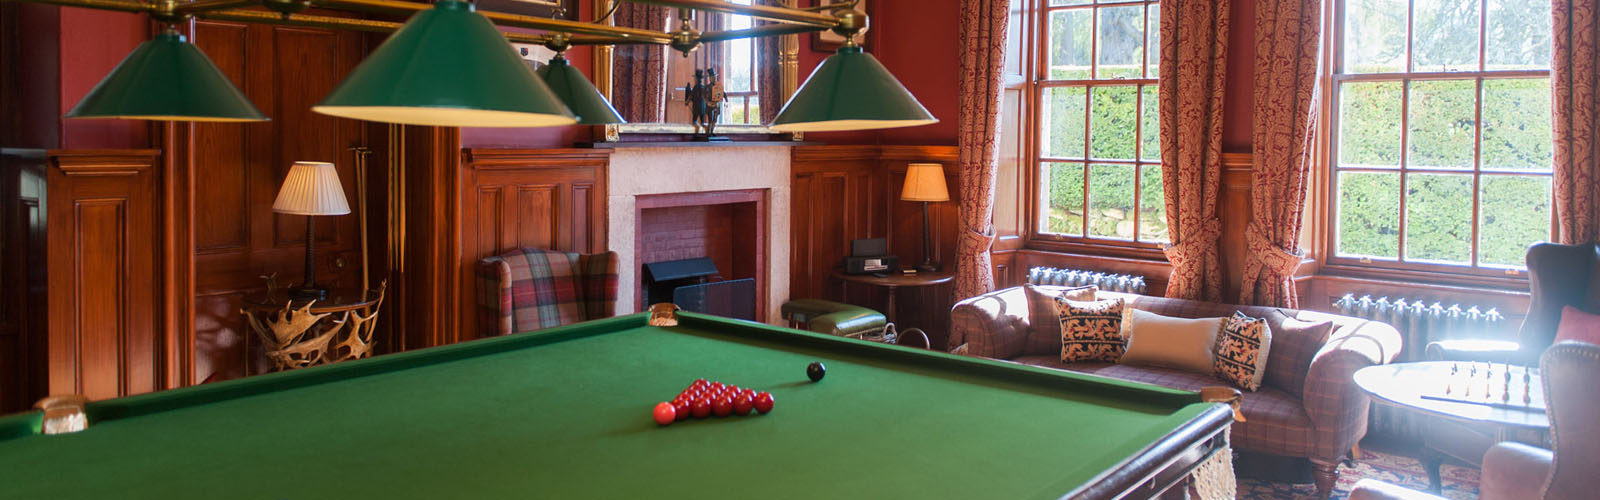 Large house with Snooker table.